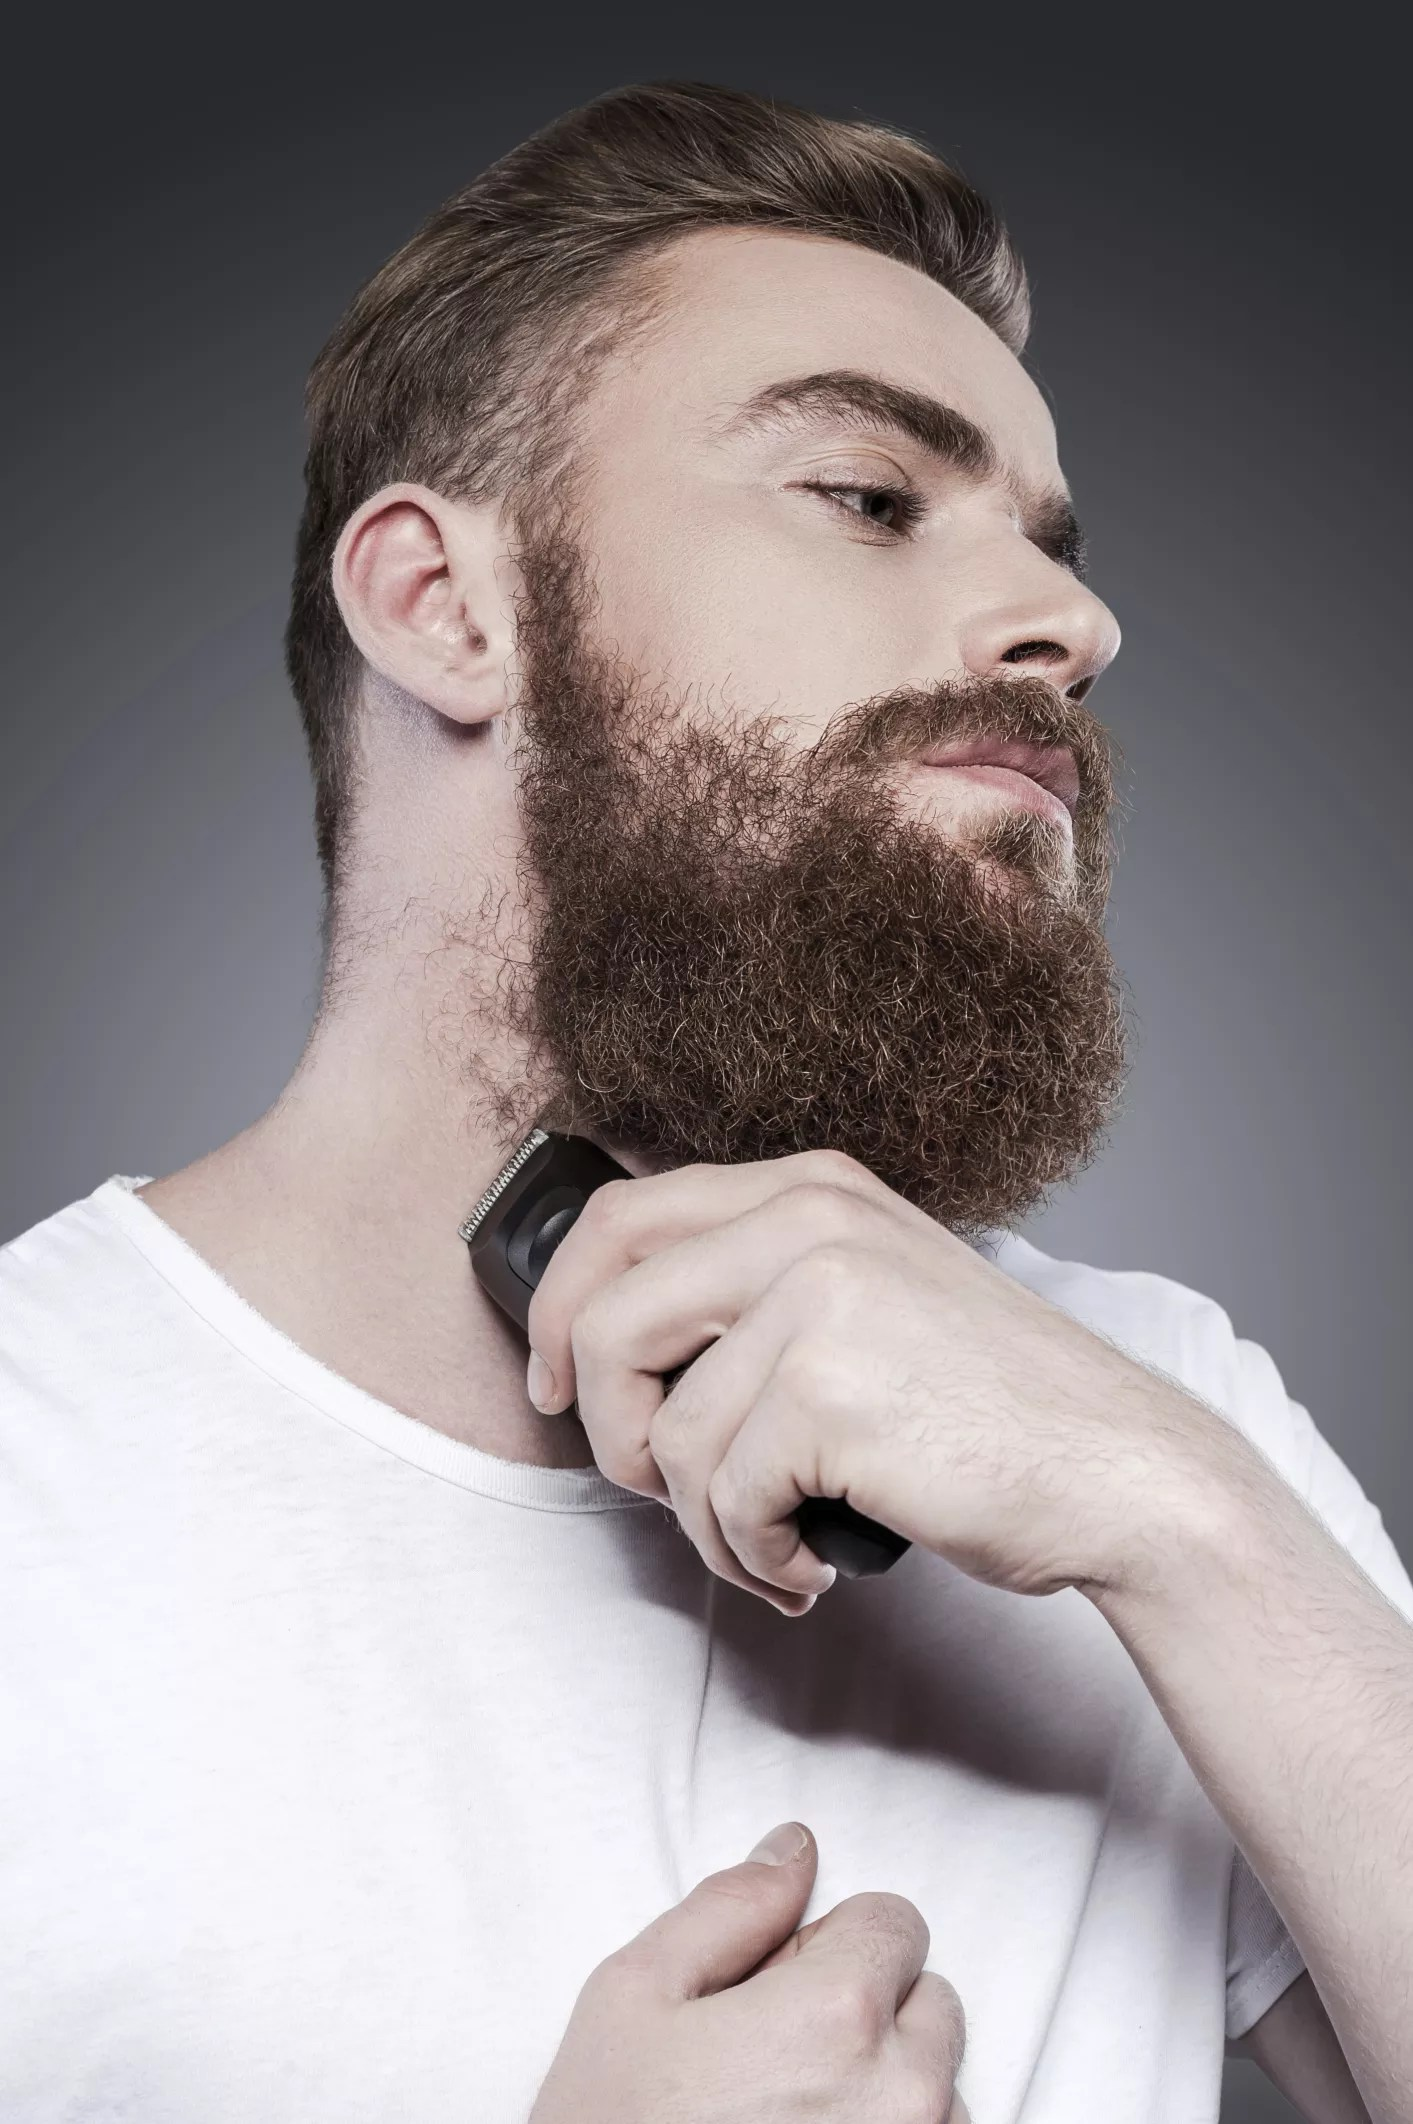 Coiffure Homme Plus Barbe Coiffure Homme Accorder Sa Coupe à Sa Barbe Le Figaro